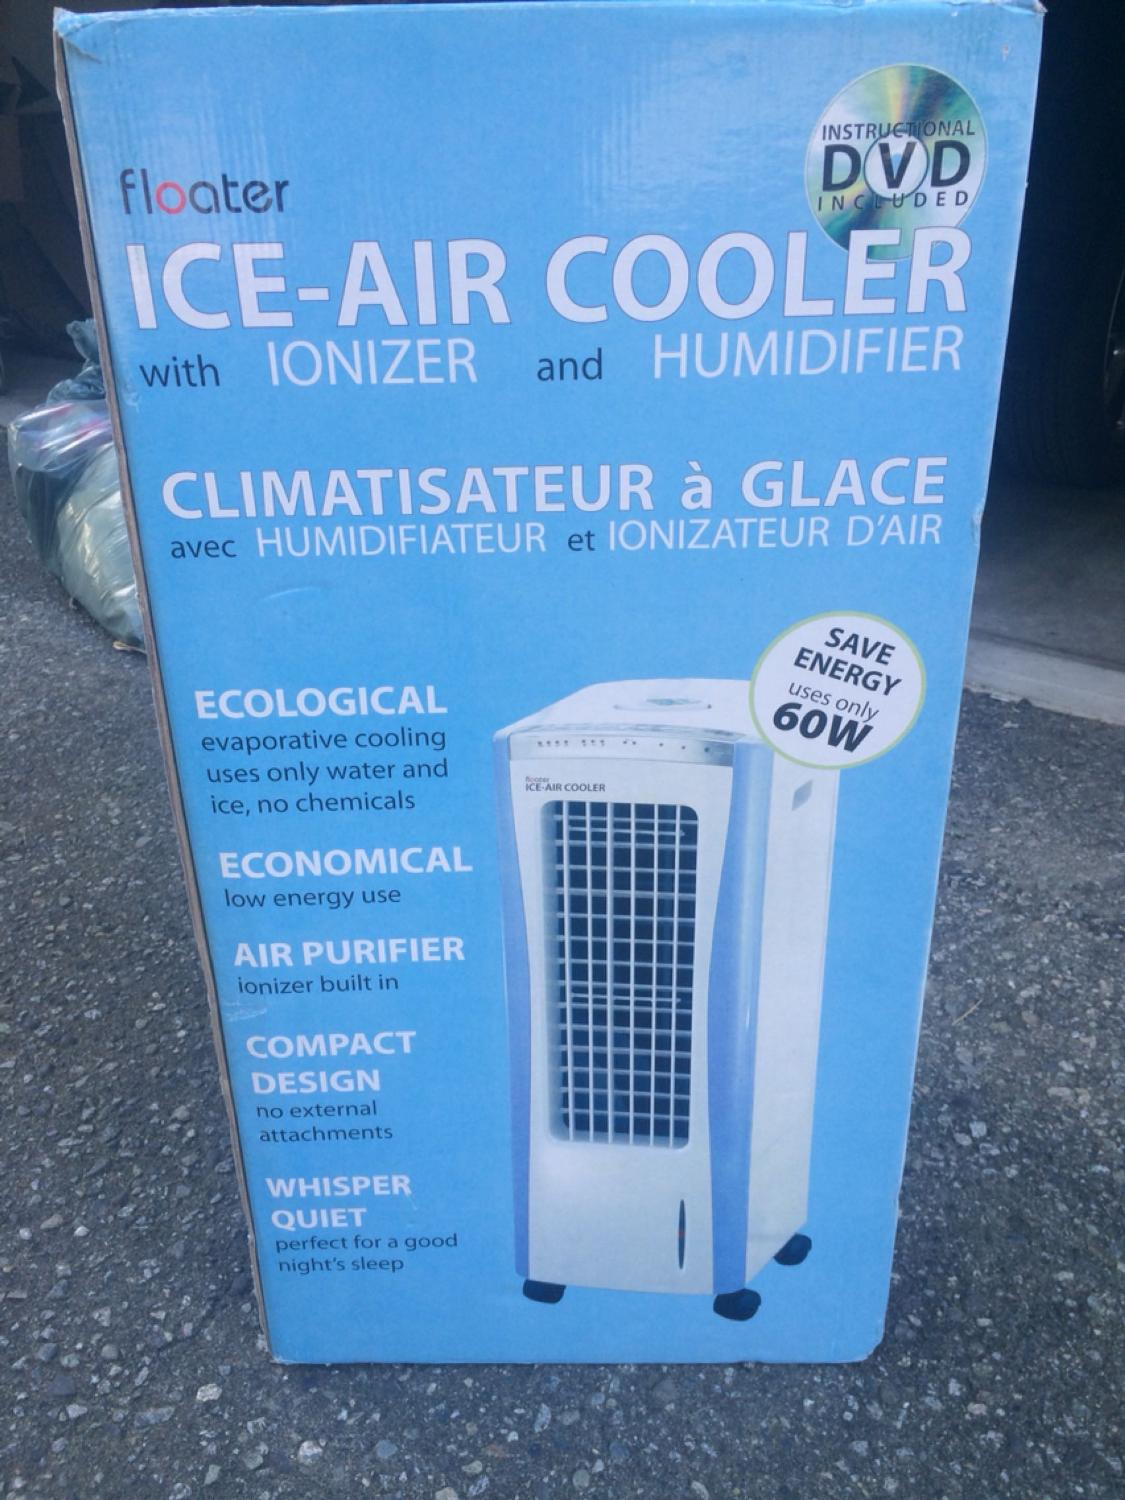 Find More Floater Ice Air Cooler Air Conditioning Made